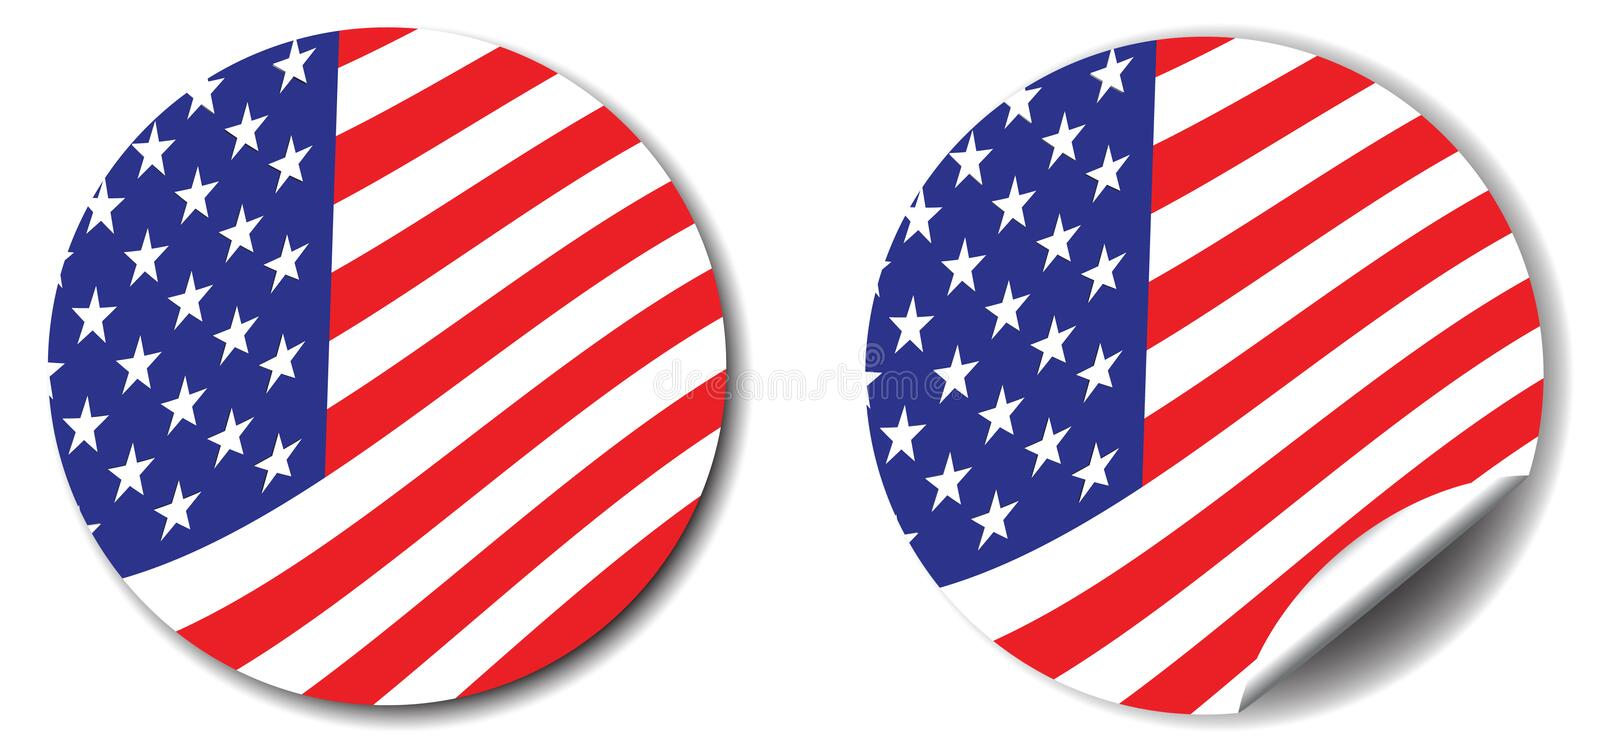 Download Stars, Stripes Button And Sticker Stock Vector - Illustration of label, flags: 14378700